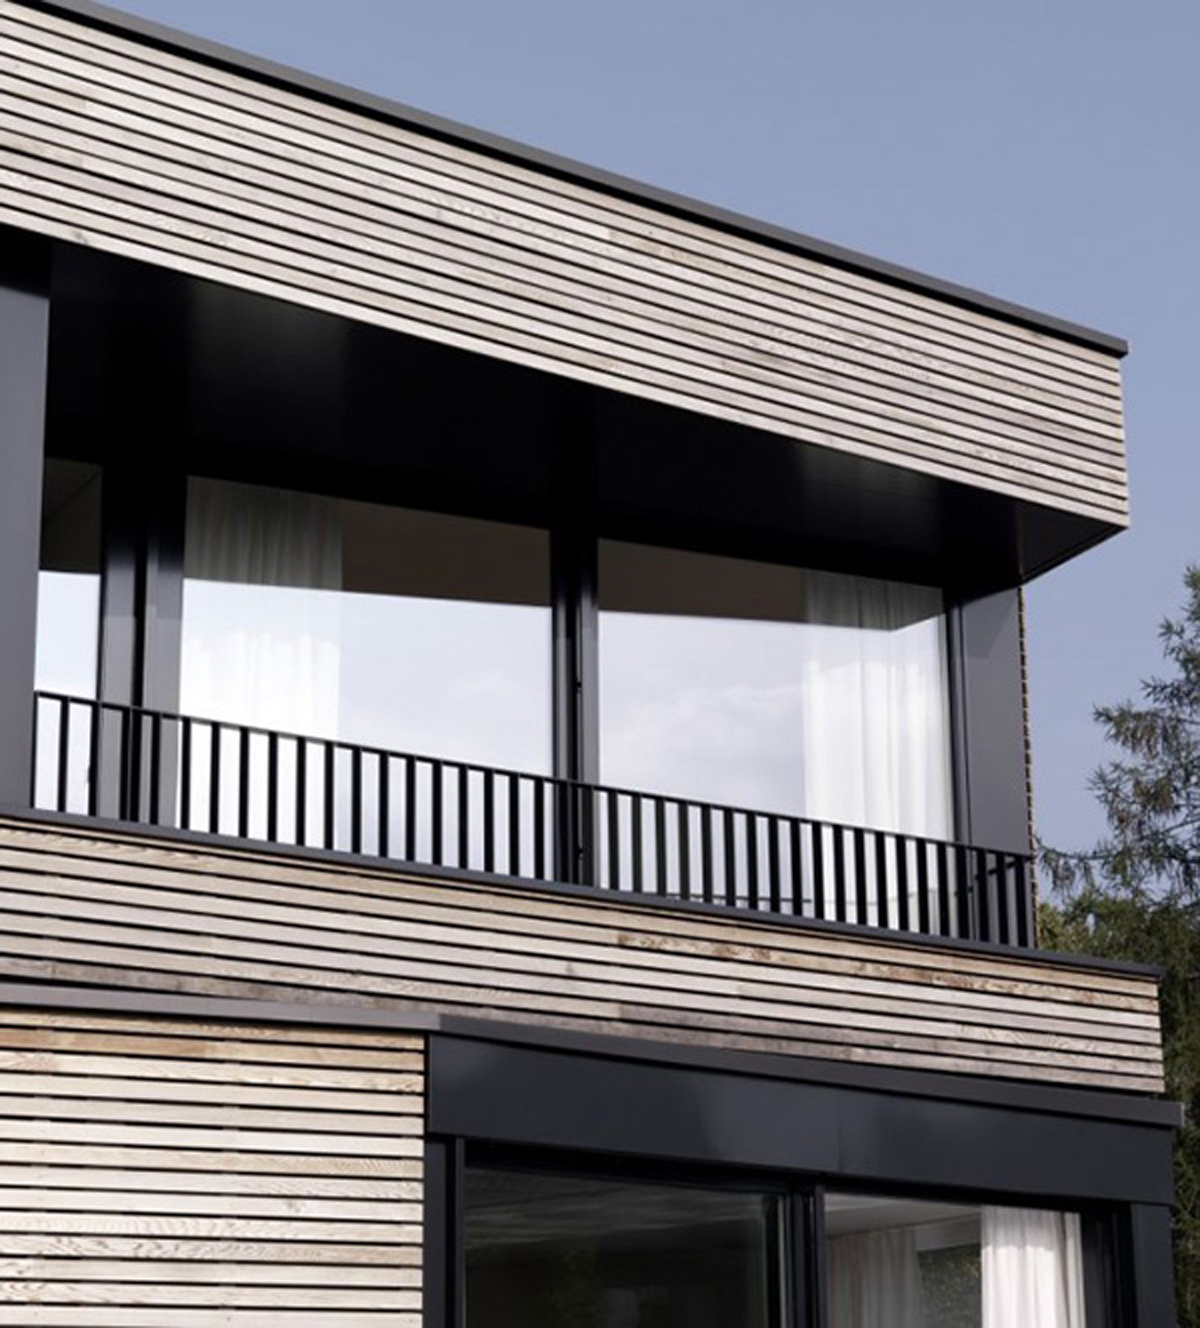 Smart Wooden House For Environment Friendly Living Place: Natural Wooden Exterior Design With Lined Wood